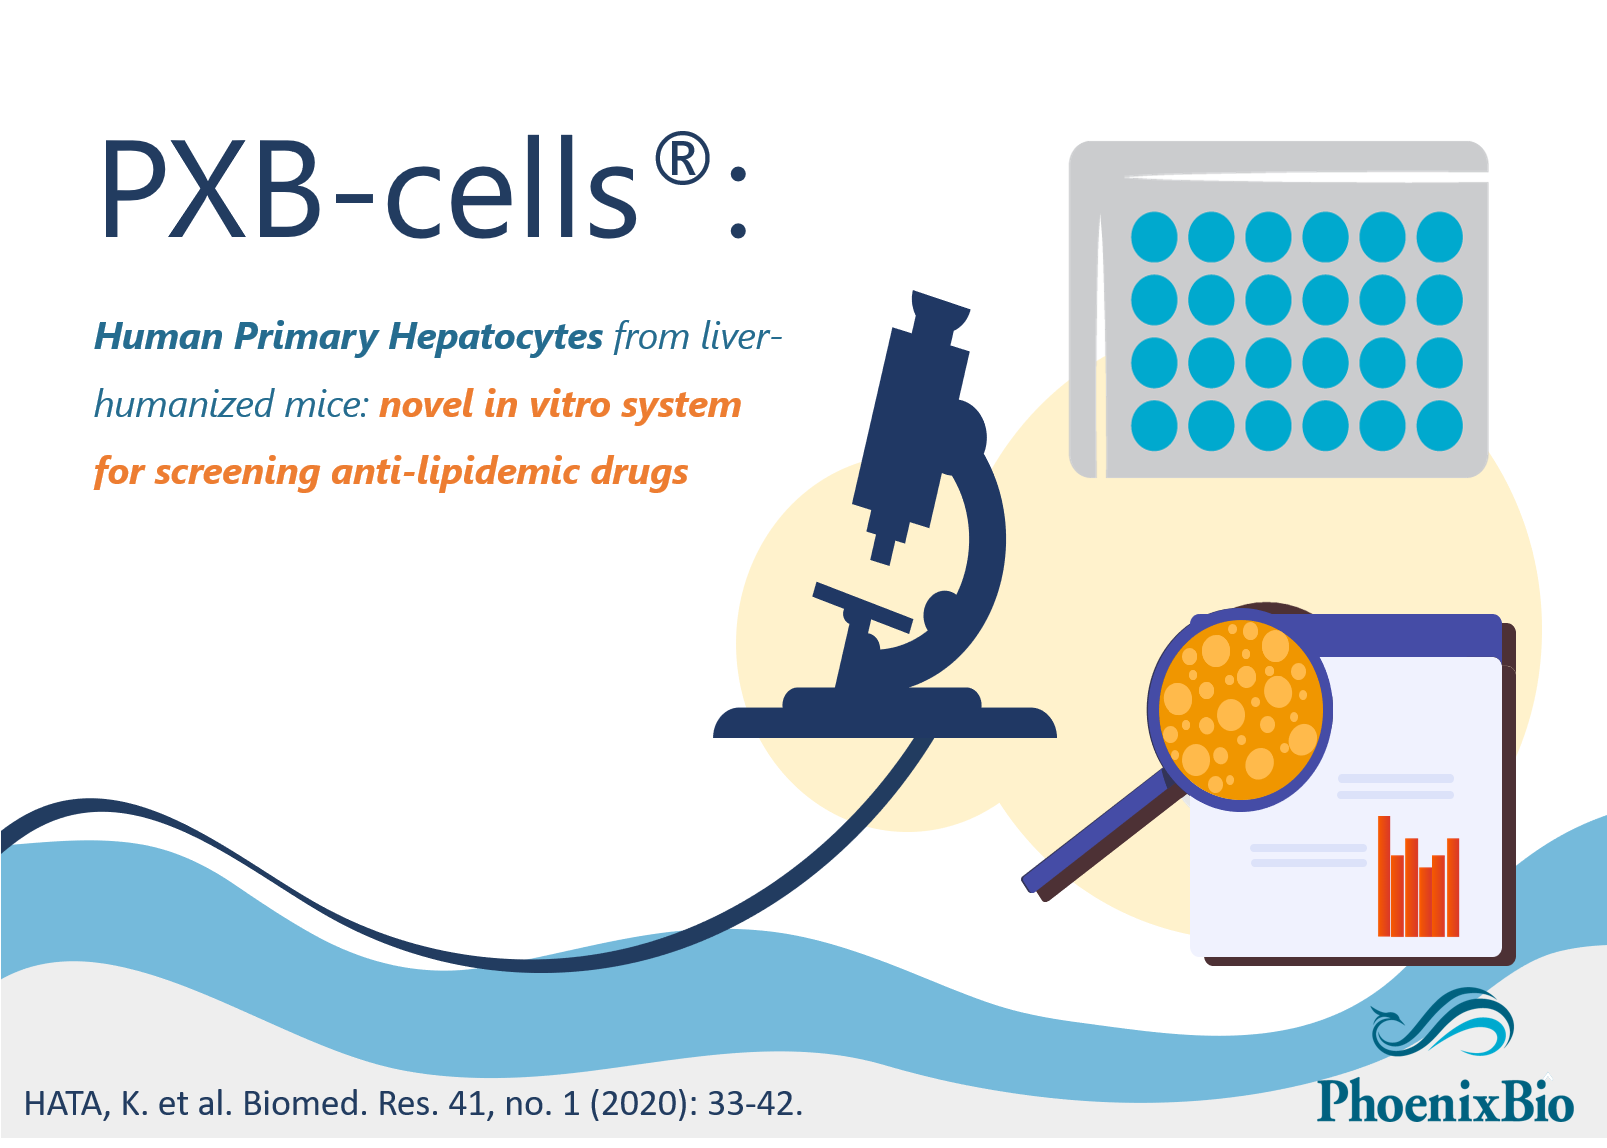 A new publication on lipoprotein profile and lipid metabolism of PXB-cells®